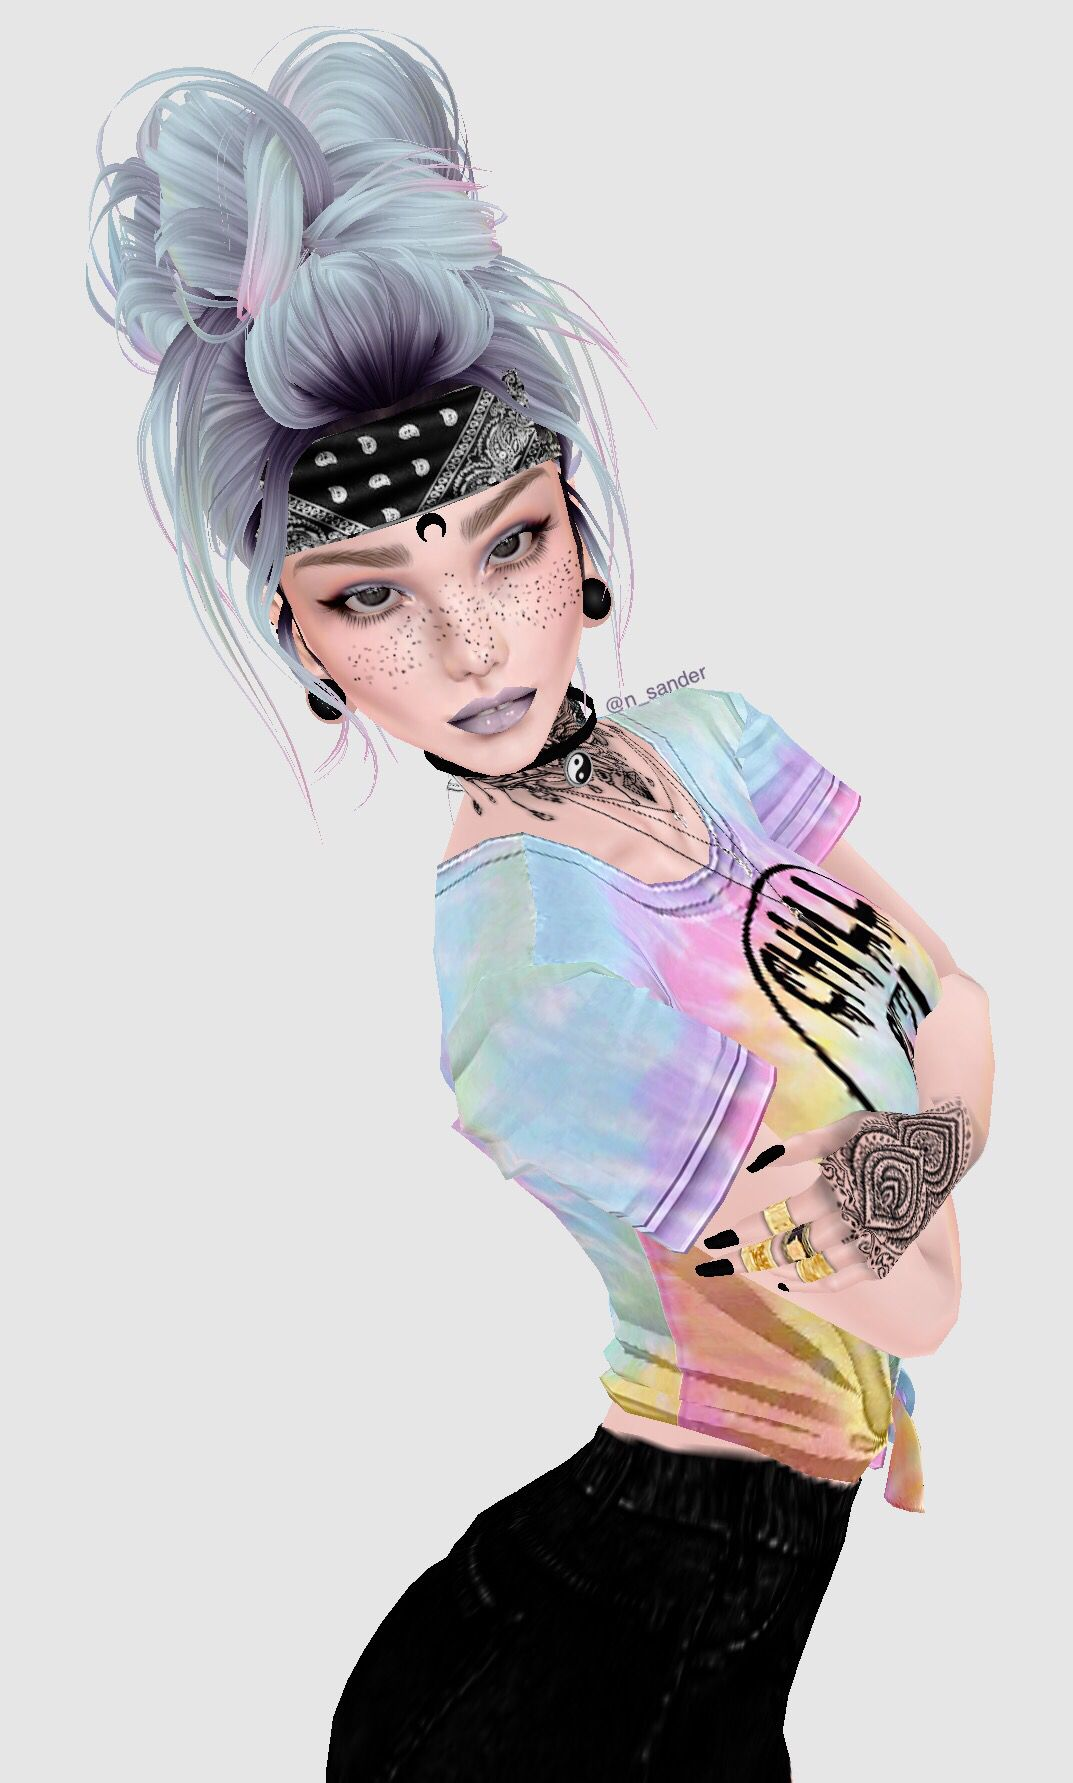 Imvu hippie aesthetic girl Aesthetic girl, Imvu, Anime